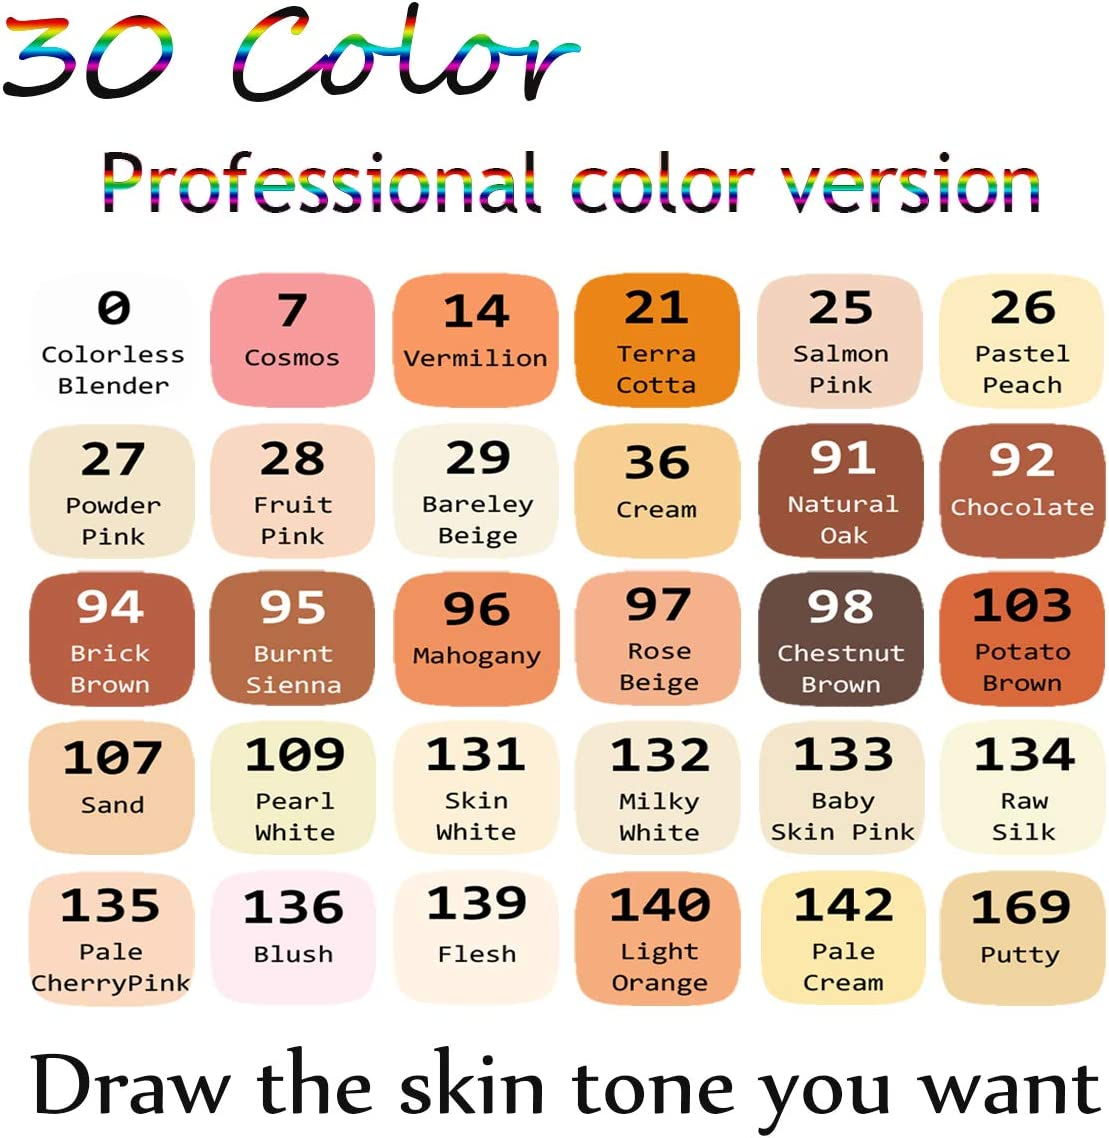 Permanent Artist Markers Pen for Art Creation Design Portrait Illustration Sketching Drawing Coloring ADAXI 30 Colors Blue Tone Art Marker Pen Double-Ended Sketch Markers Alcohol Based Markers